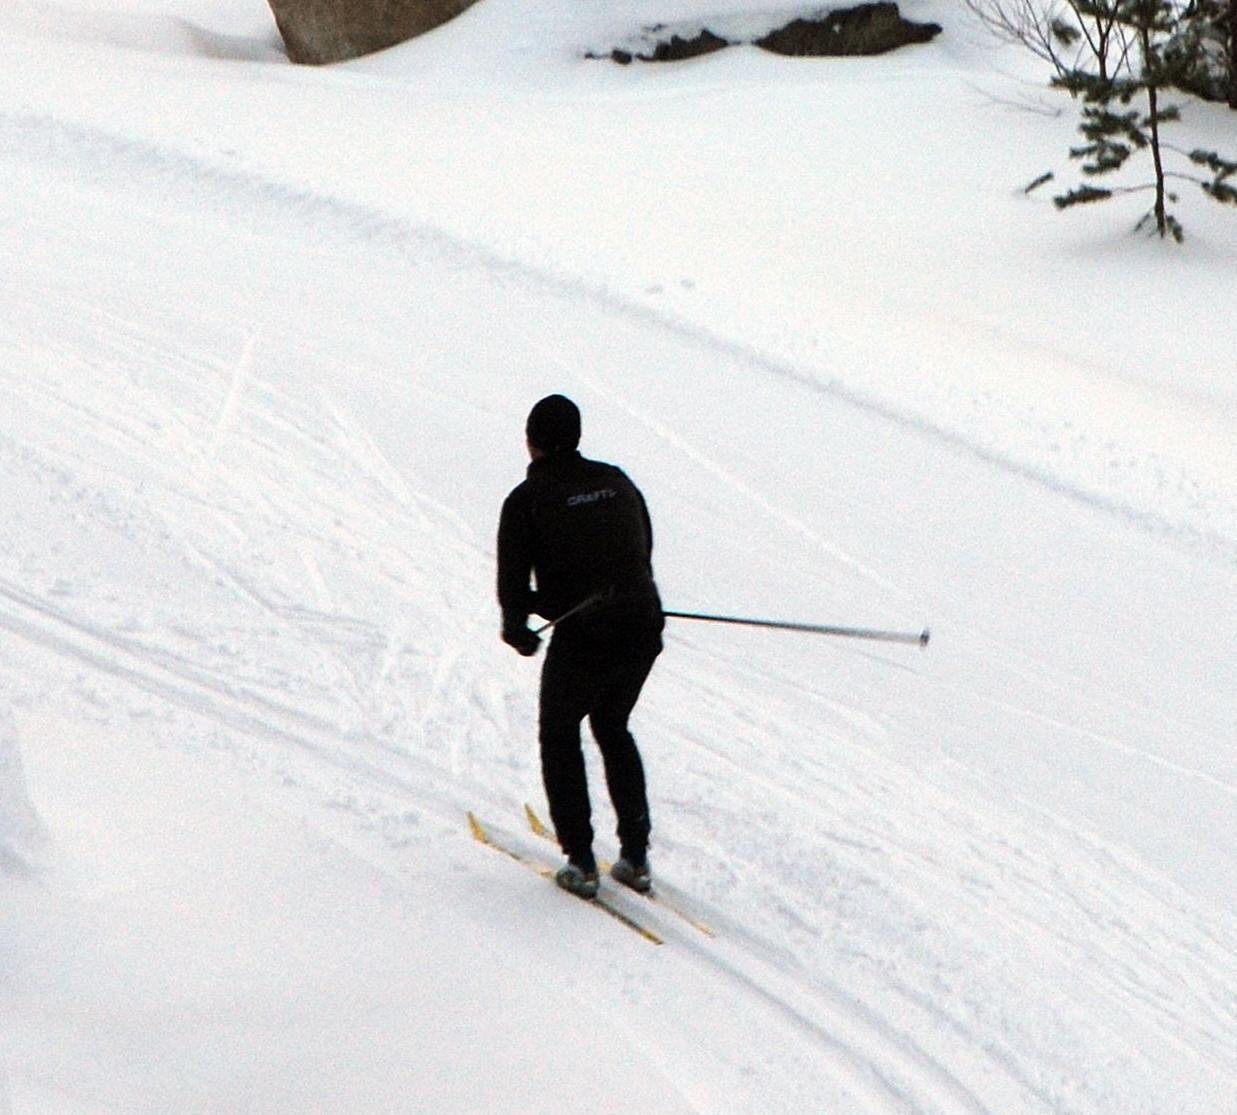 Cross country skiing tracks in Hällmyra, Söderhamn